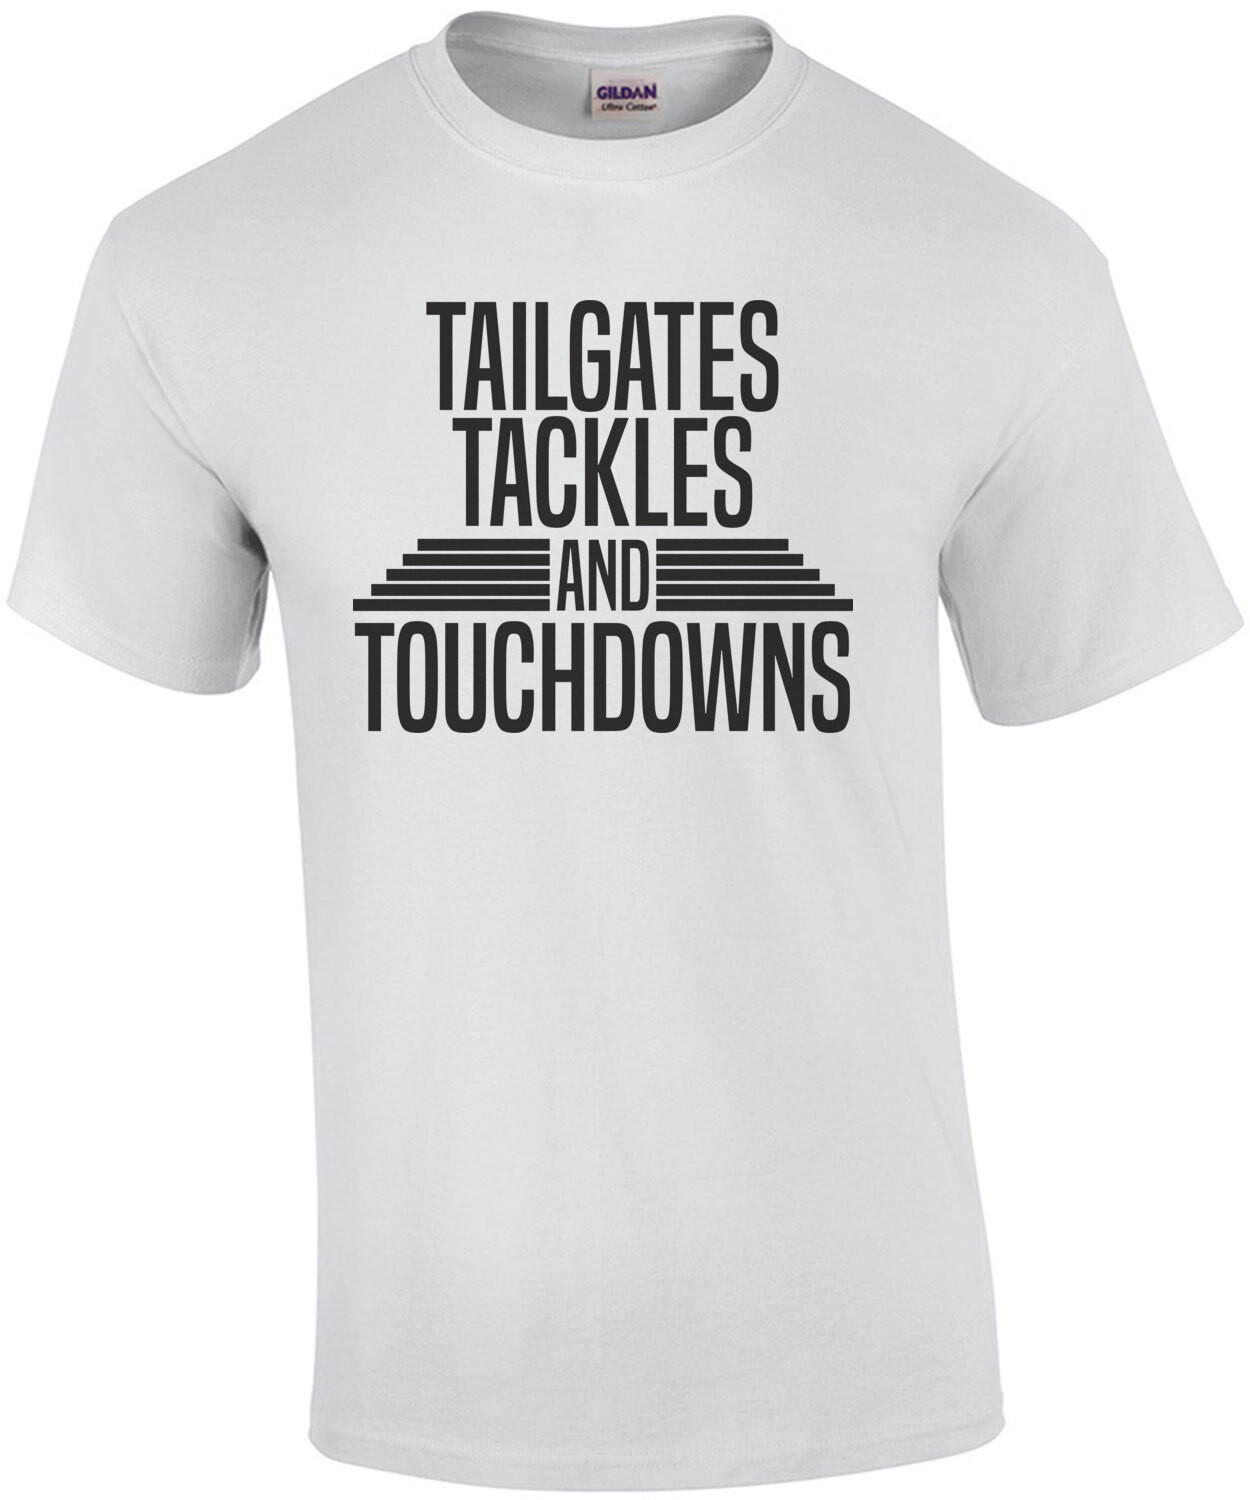 Tailgates Tackles and Touchdowns - football sports t-shirt